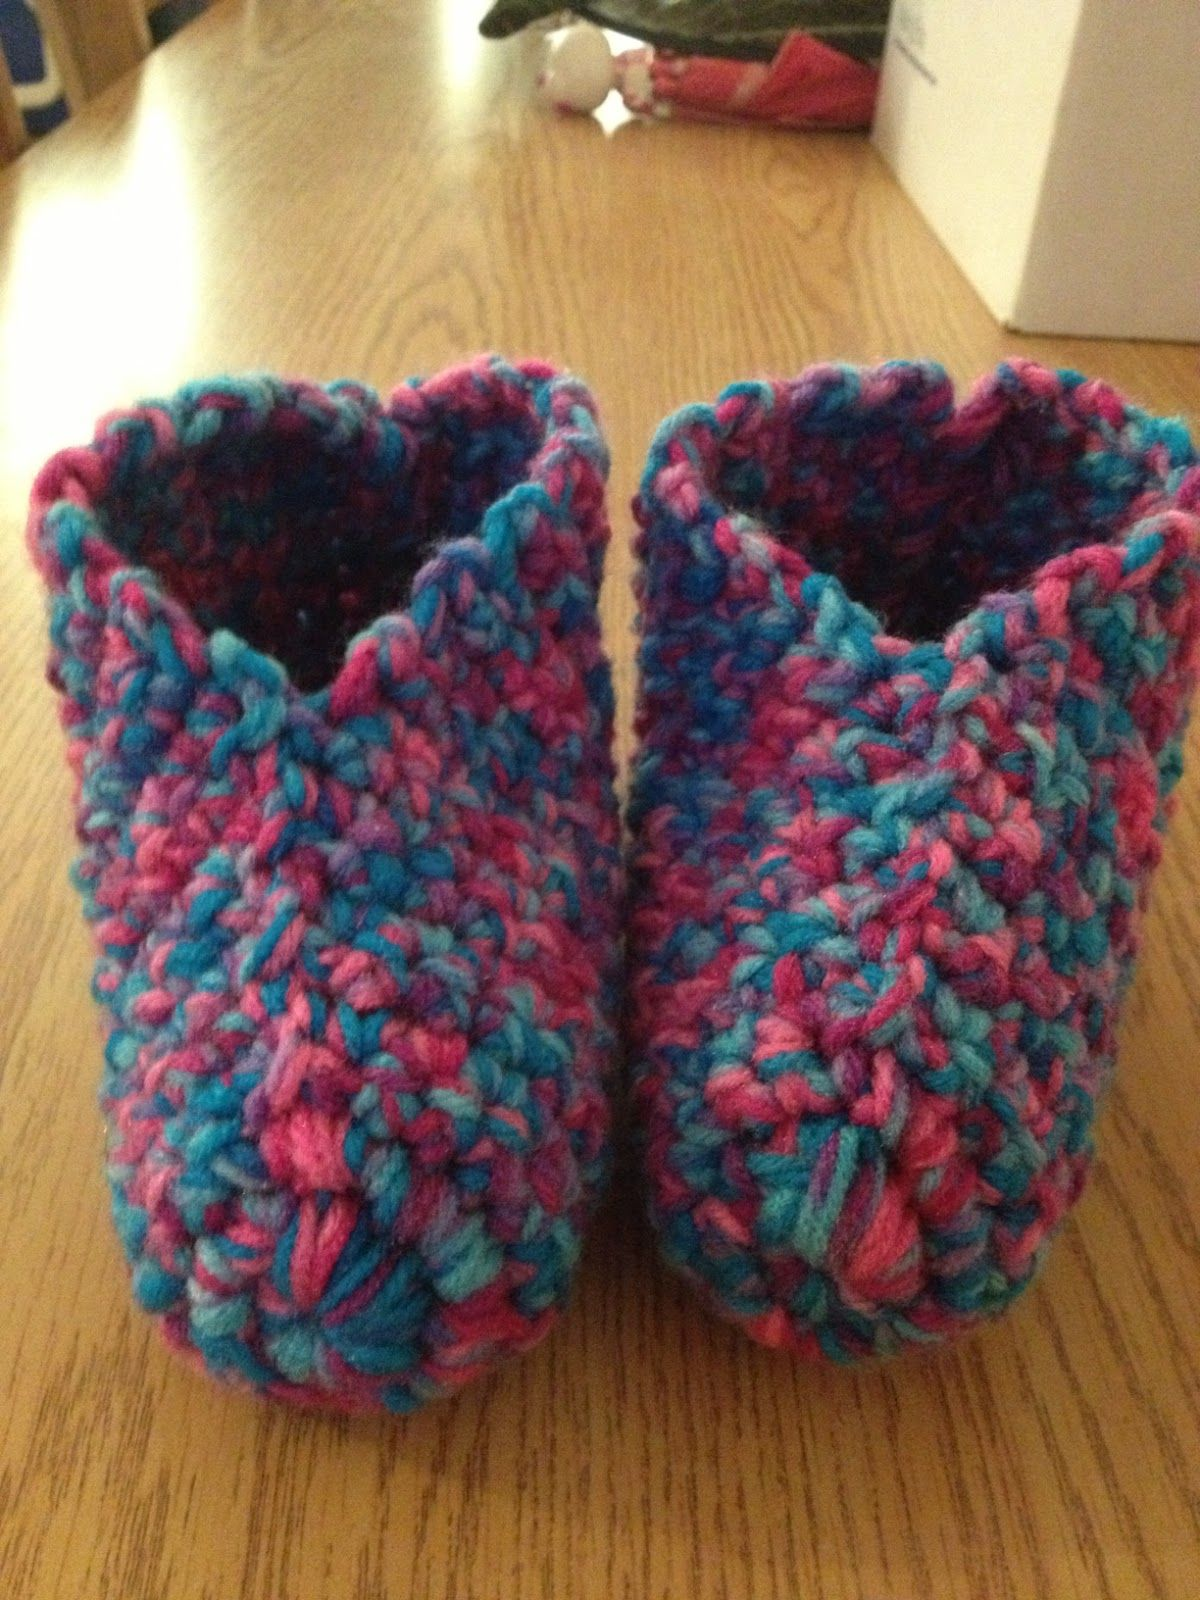 Hooking is a Lifestyle : Crochet Slippers